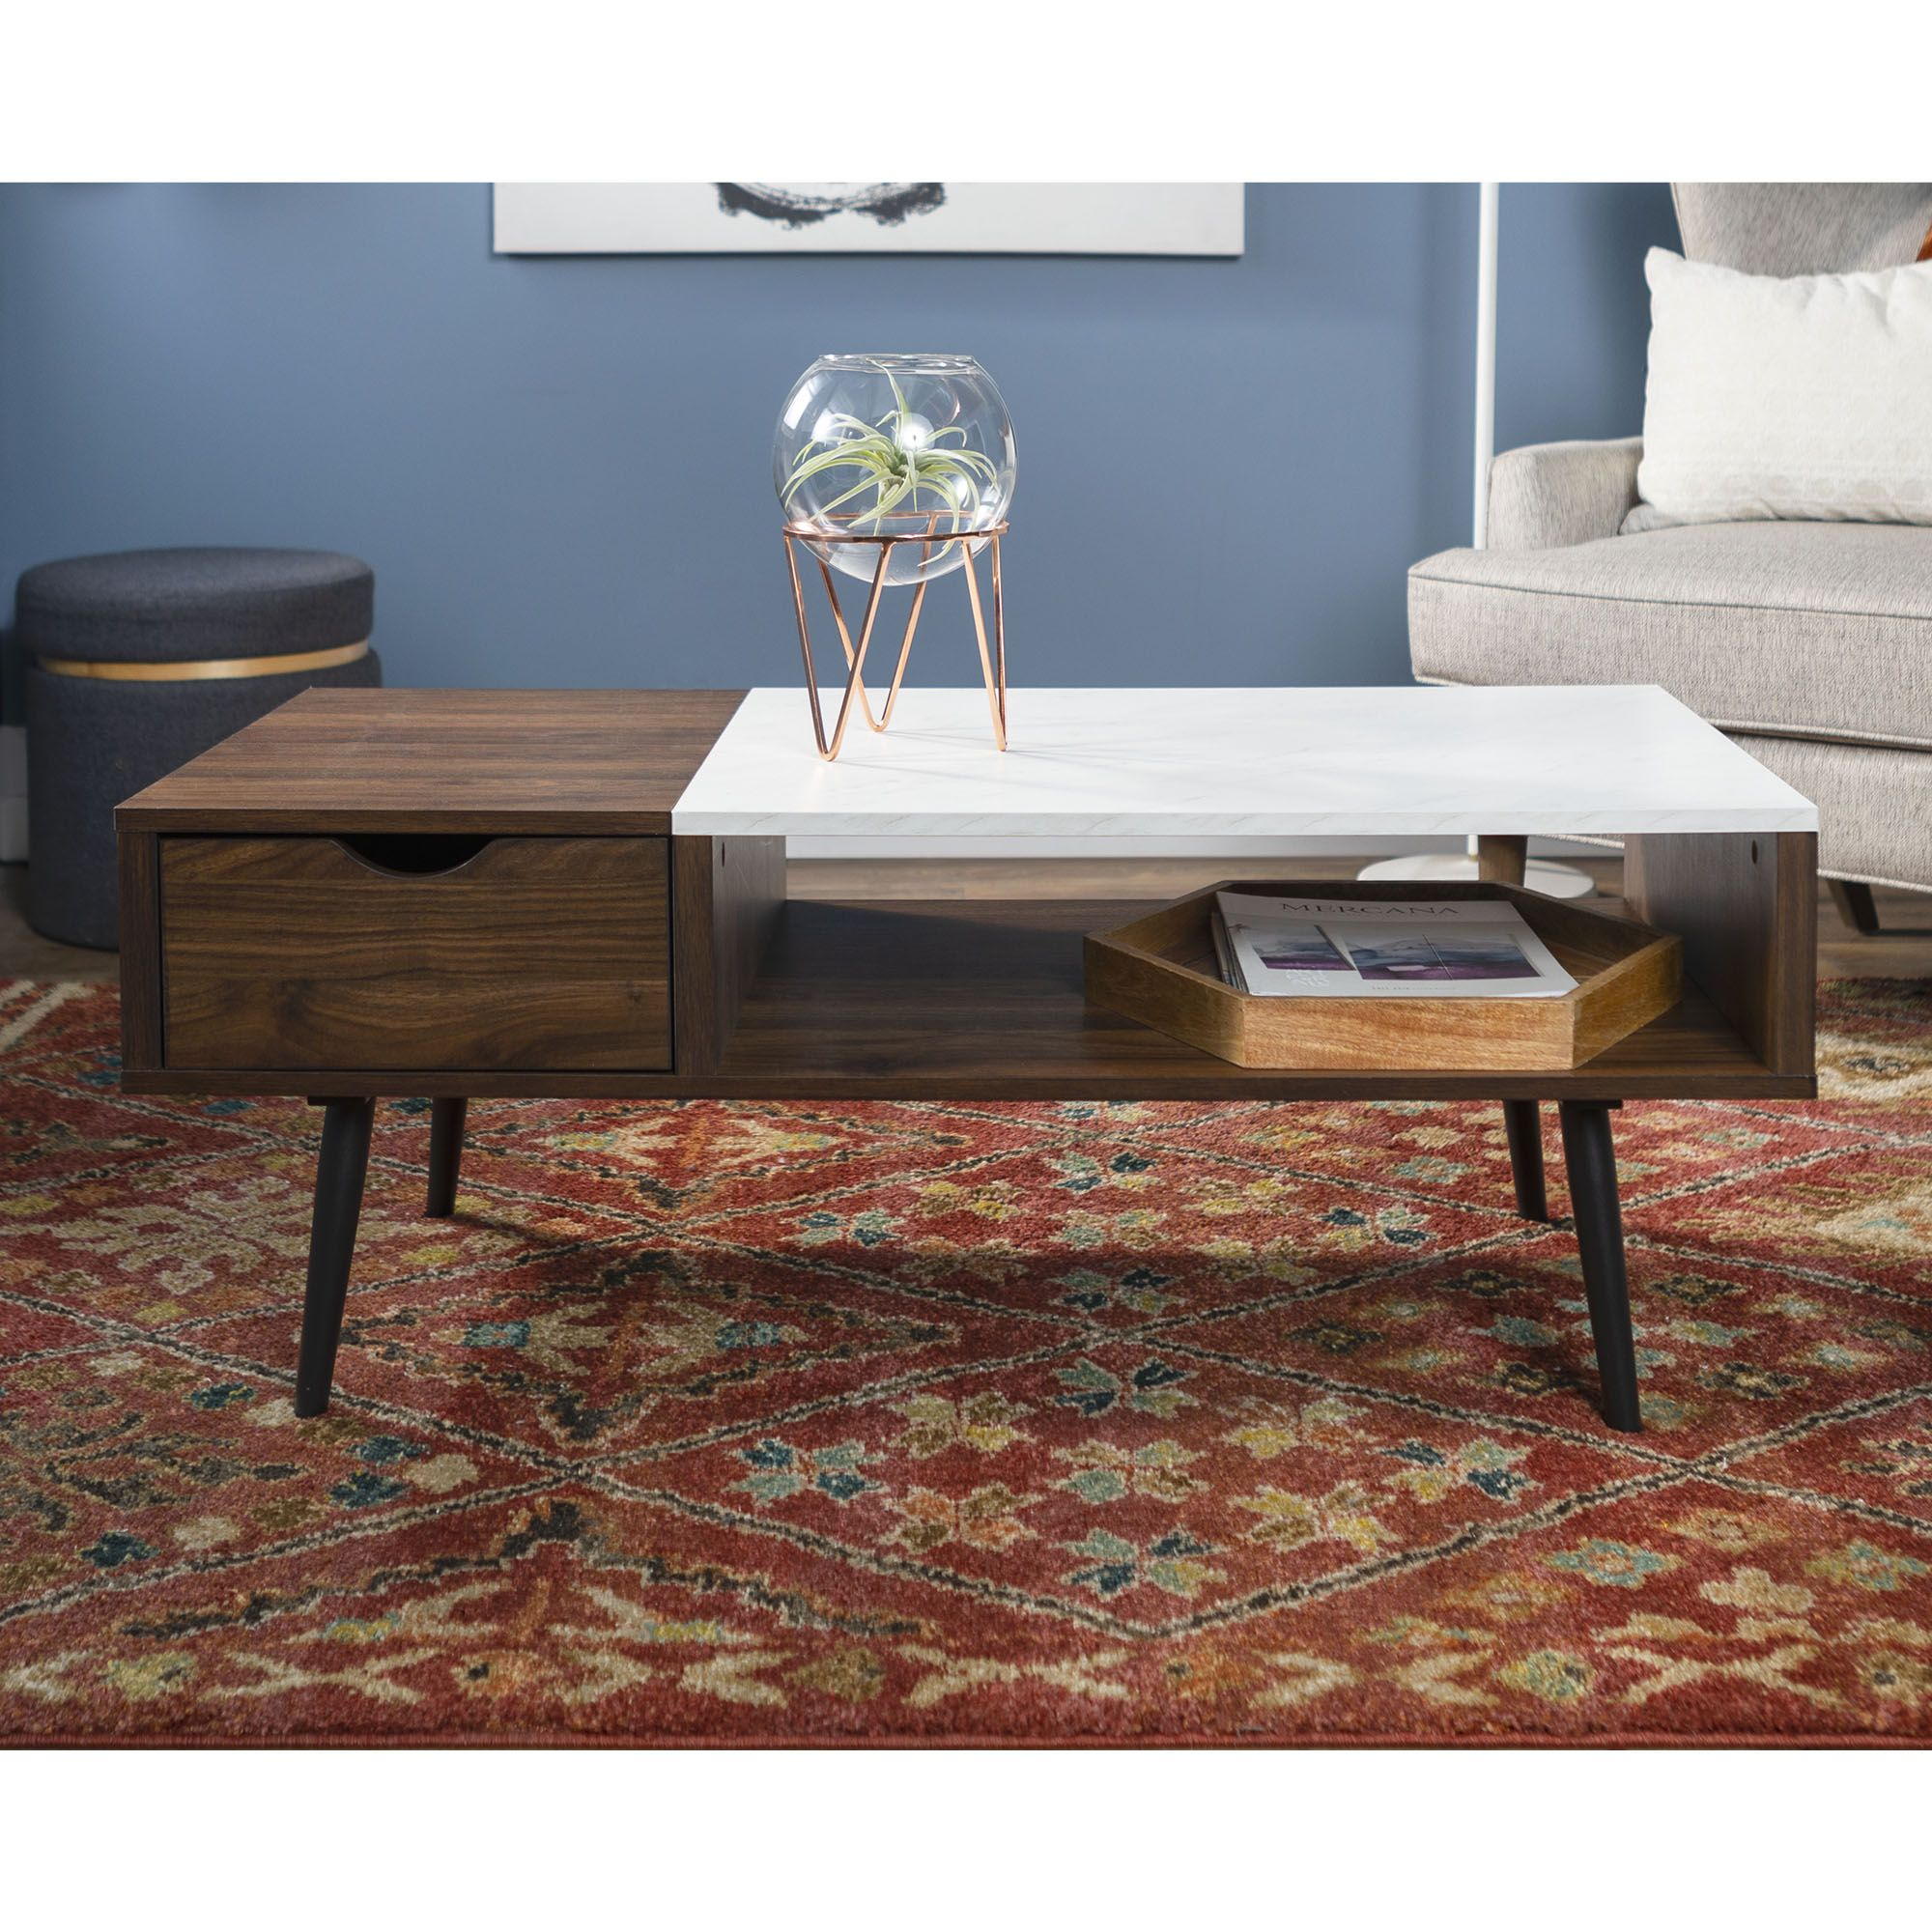 Booker Dark Walnut And Faux Marble Coffee Table By Bellamy Studios Walmart Com Faux Marble Coffee Table Coffee Table Walnut Coffee Table [ 2000 x 2000 Pixel ]